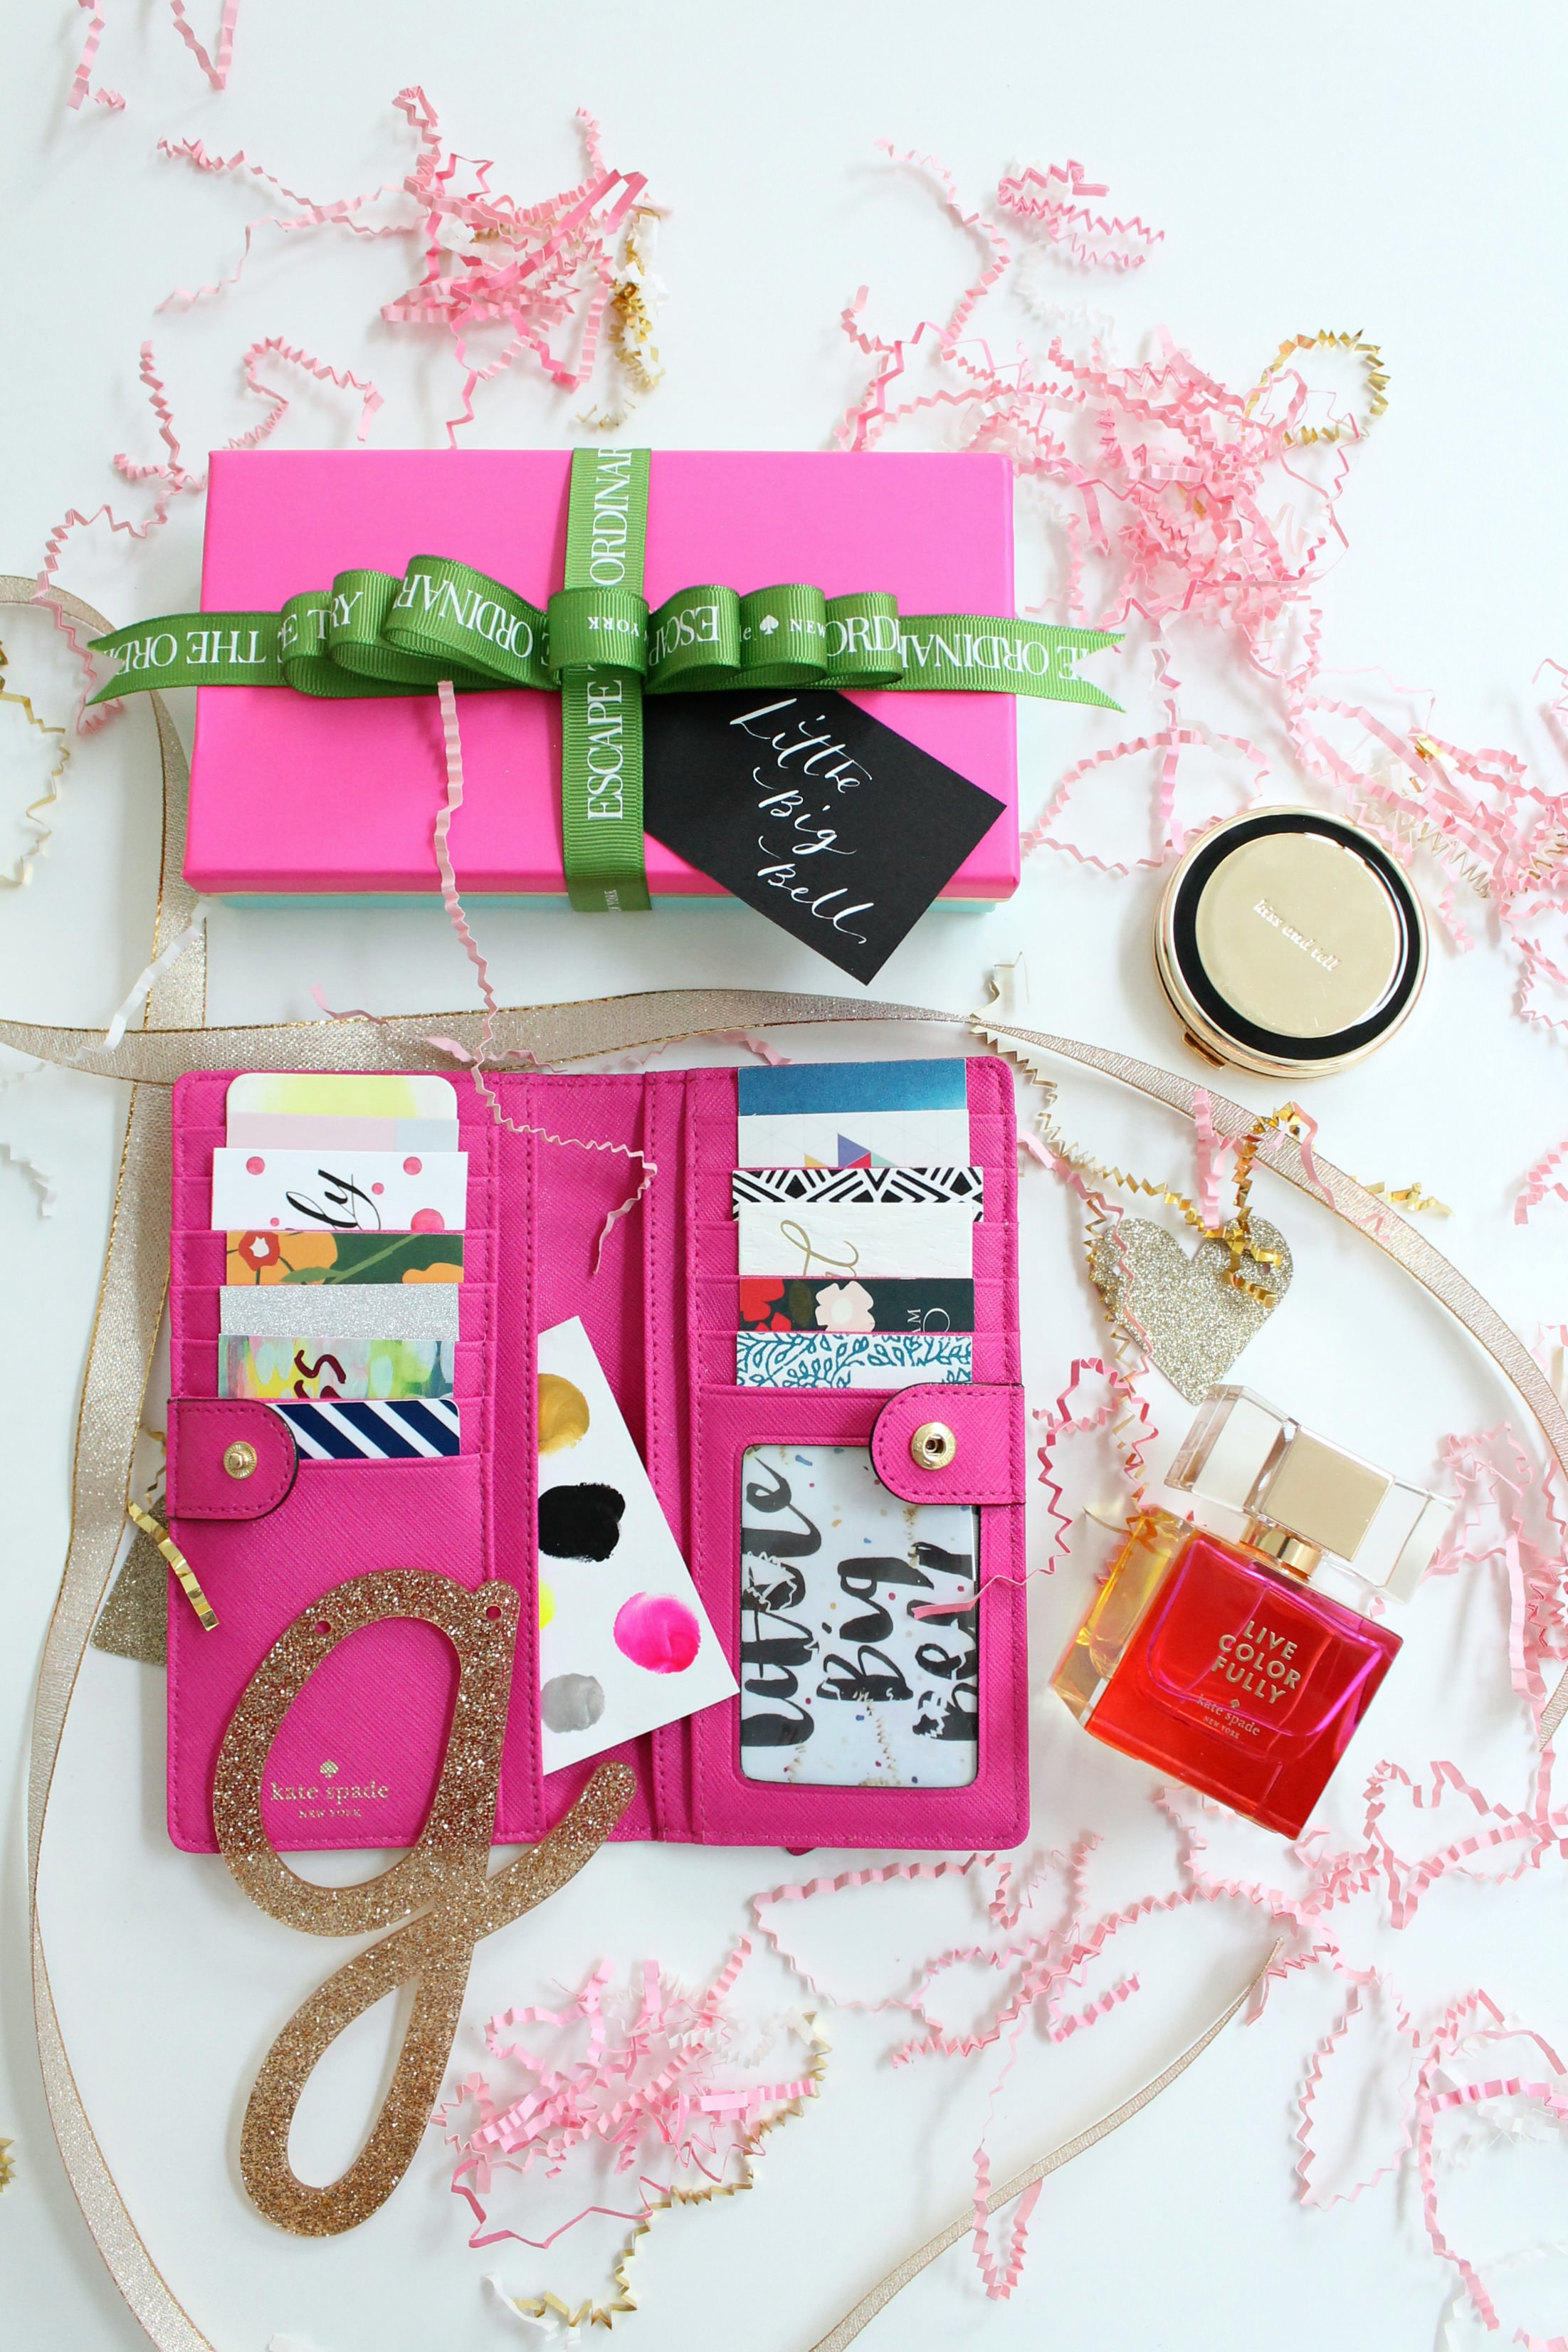 Hello u0026 Welcome & littleBIGBELL Kate Spade NY #Getgifted and a £200 voucher giveaway. -